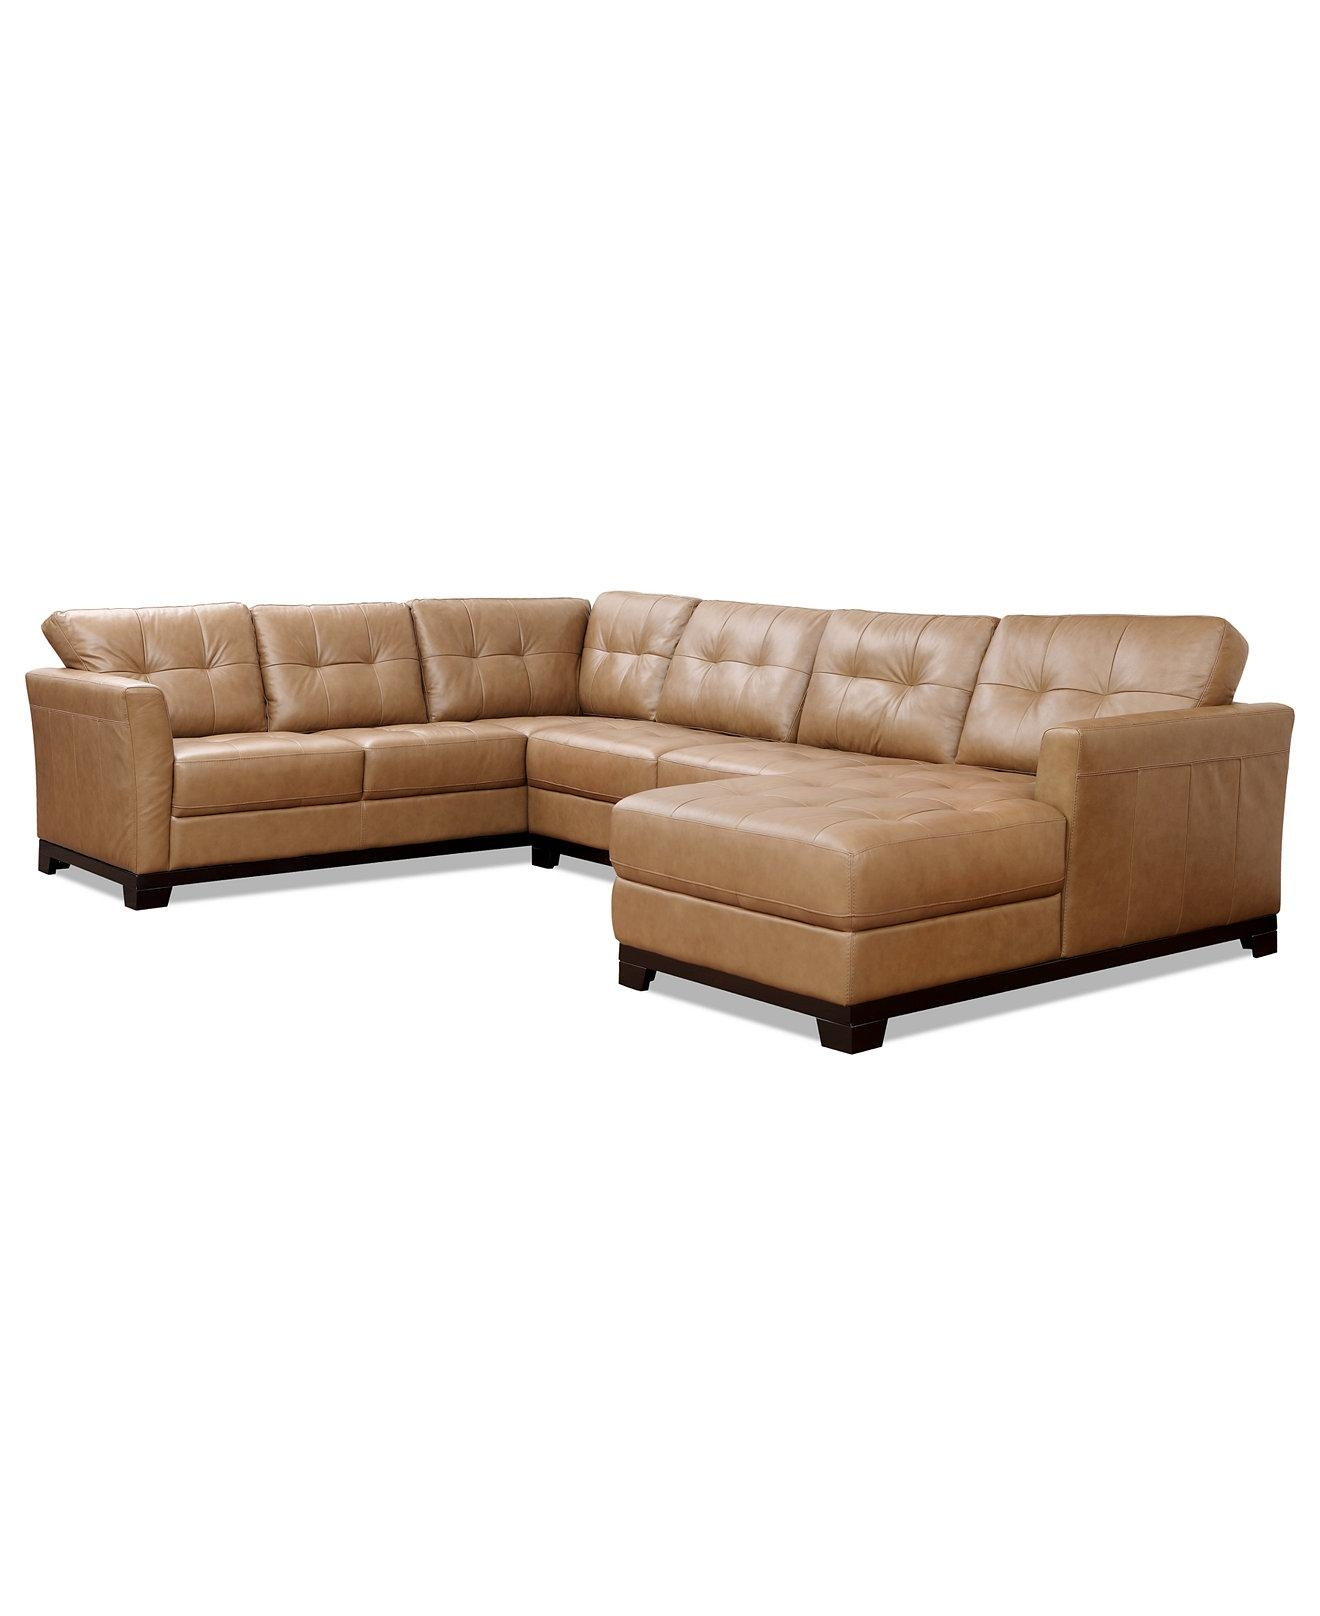 Sectional Sofas Macys 41 With Sectional Sofas Macys | Jinanhongyu Throughout Macys Leather Sofas Sectionals (Image 10 of 20)